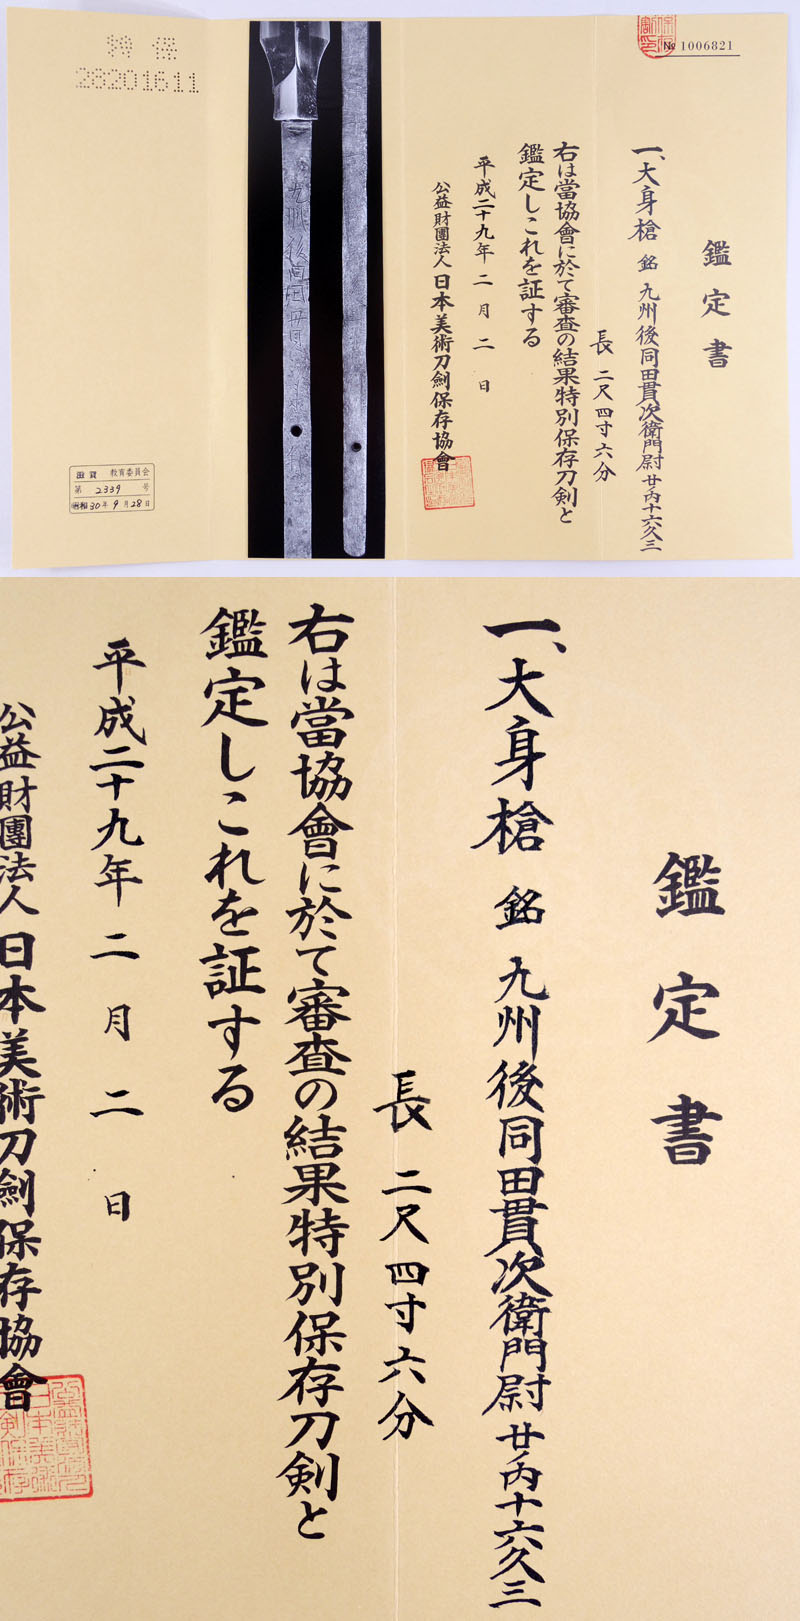 九州後同田貫次衛門尉 Picture of Certificate